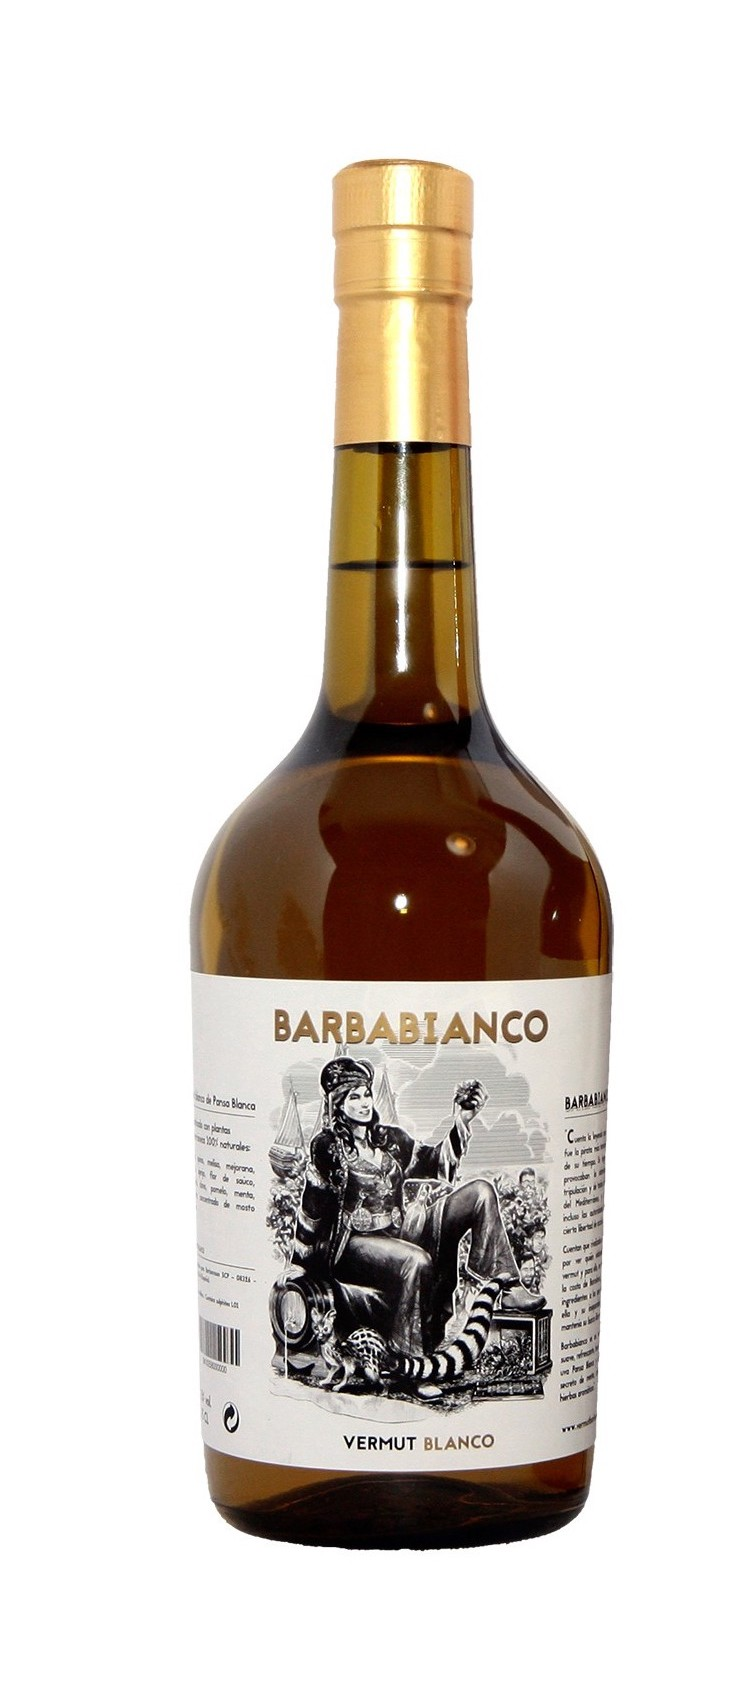 Barbabianco Vermouth - Origin: SpainRetail: $22.95 | Sale: $20.65This White Vermouth was created to enjoying in a more refreshing way, like a wine. Avoiding oxidation and sweetness in excess leaves you with a modern Vermouth that is not only great quality but very pleasant.The nose has astriking character of citrus peel accompanied by a hint of mint and lemon balm. The palate is wonderfully balanced with citrus and a sweet and subtle bitterness on the finish.Xarel-lo